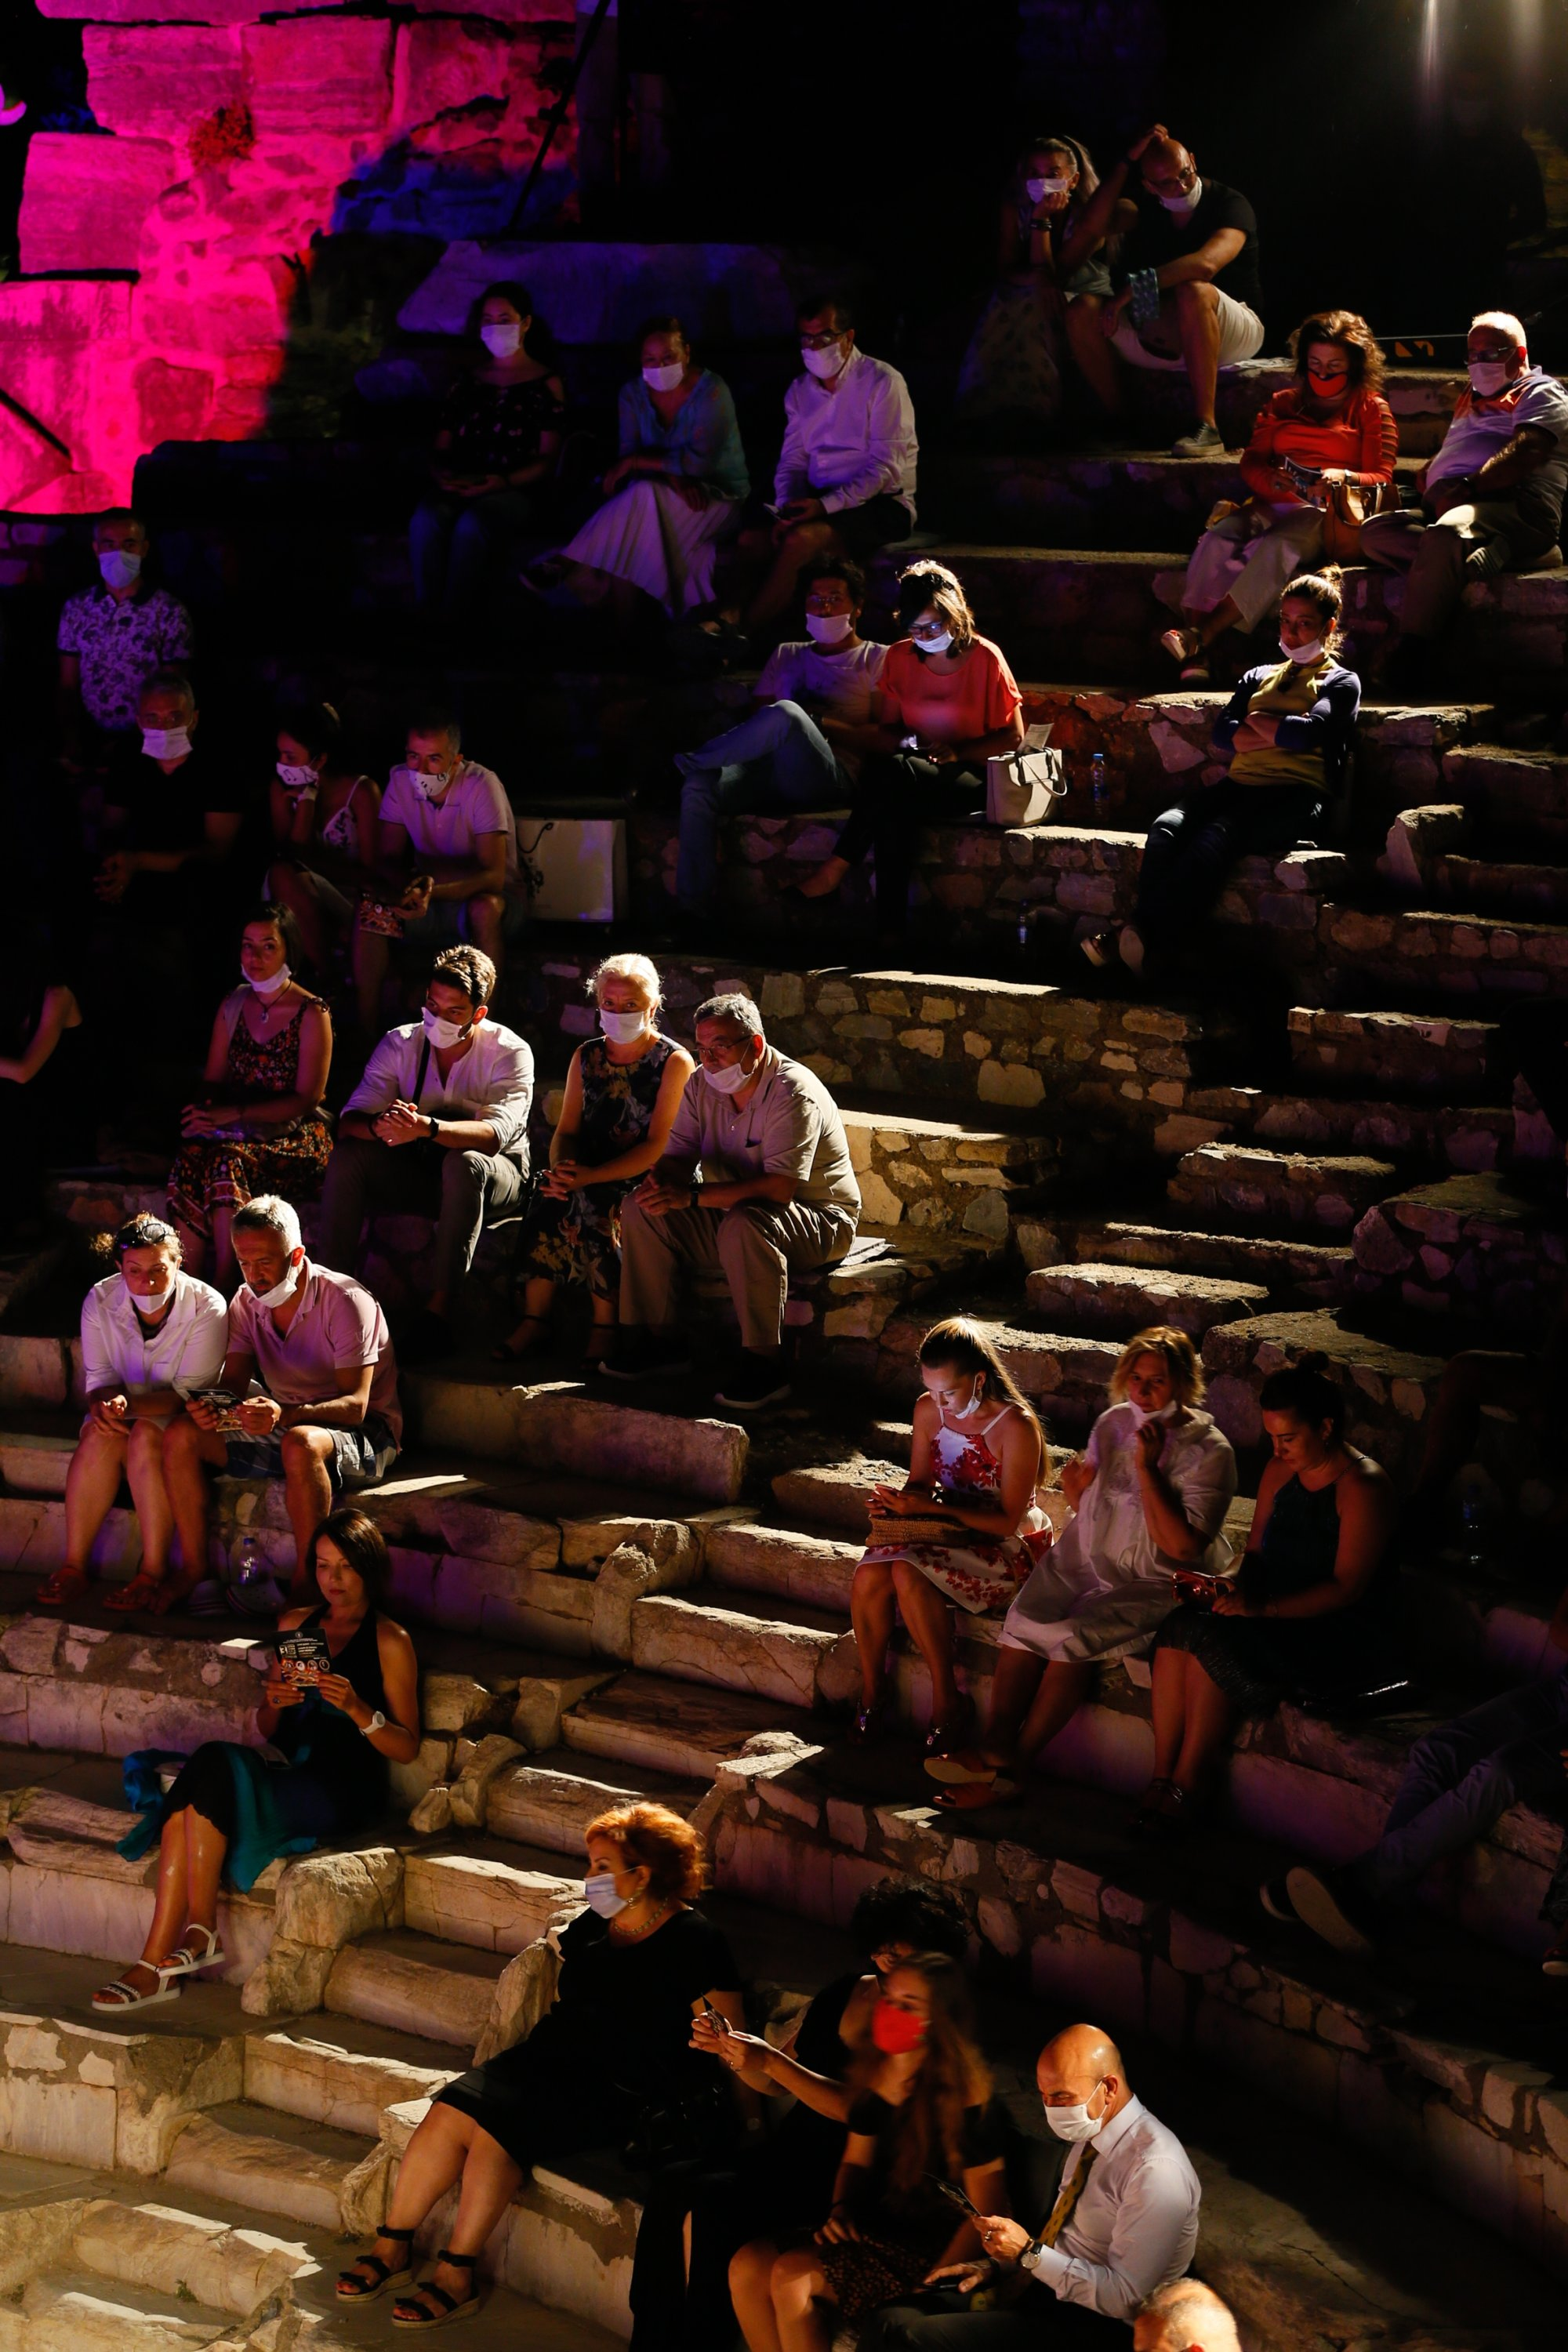 The concert followed strict COVID-19 measures, including social distancing and face maskrulesfor the audience, Izmir, July 21, 2020. (AA Photo)